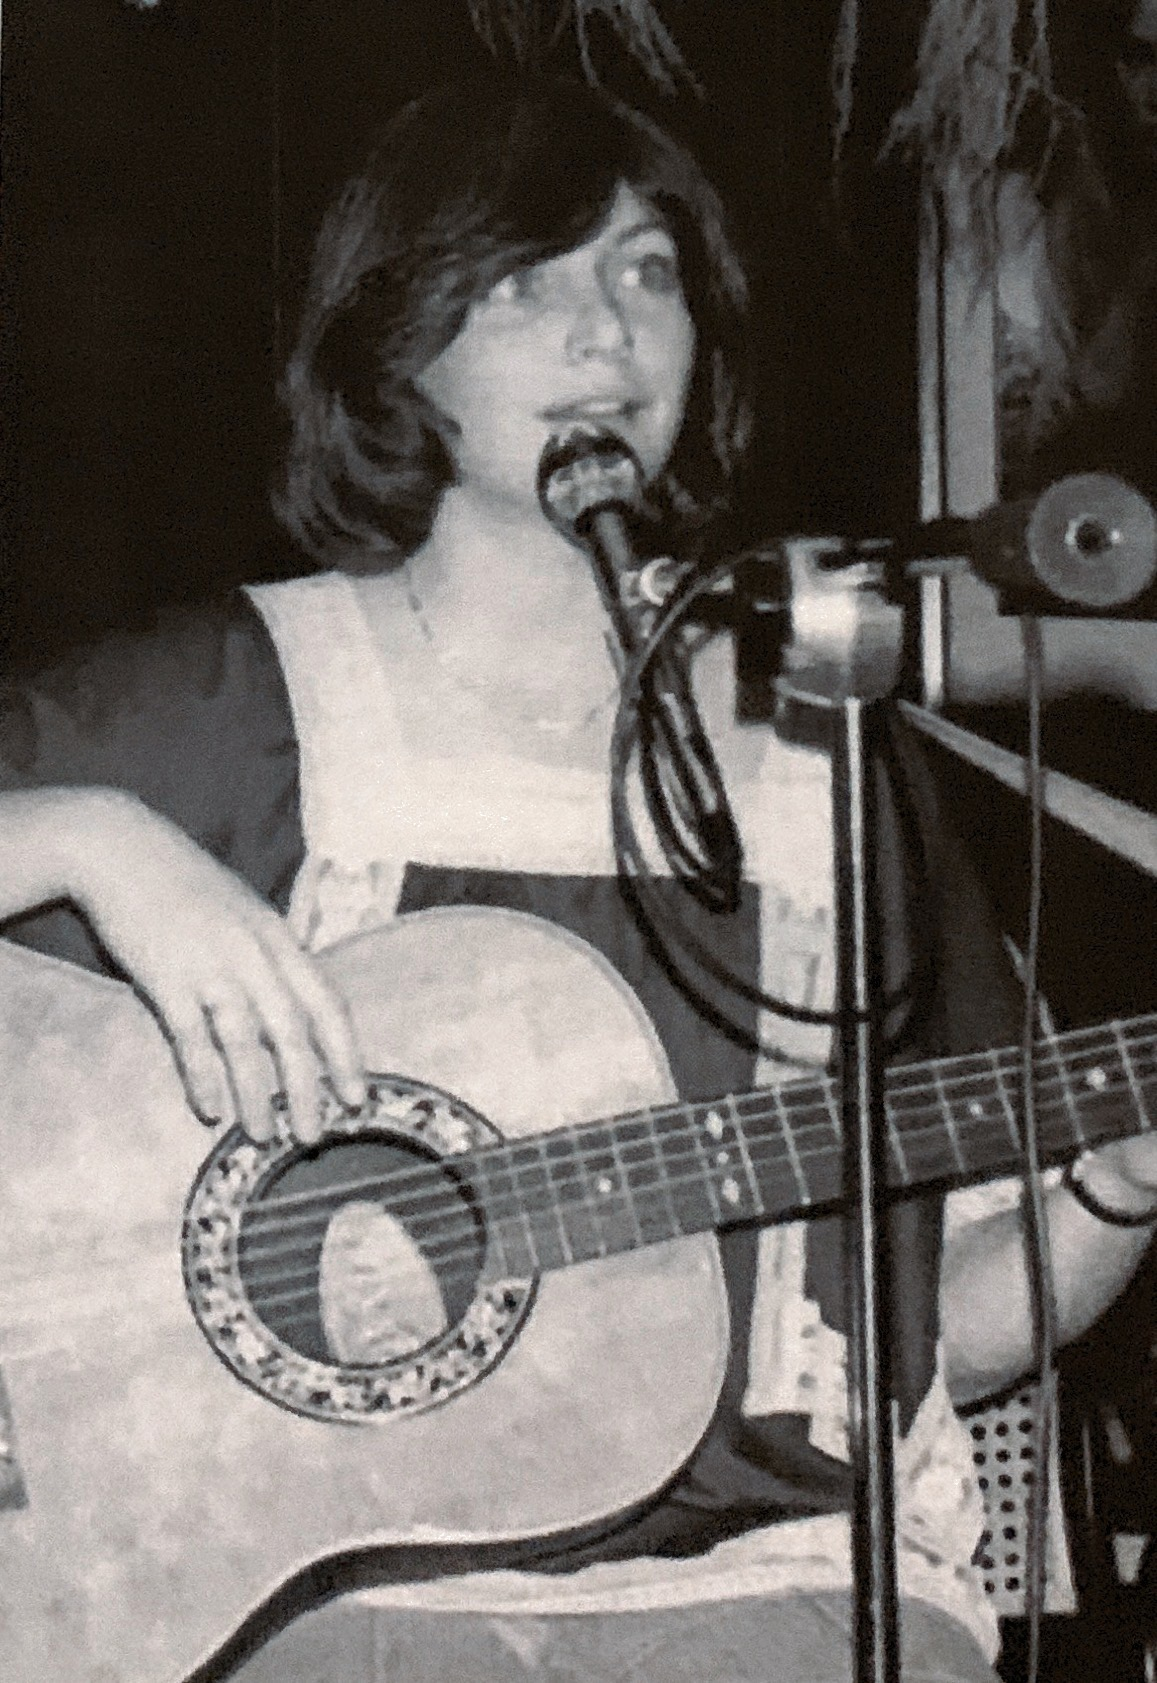 Me Playing a gig at 22